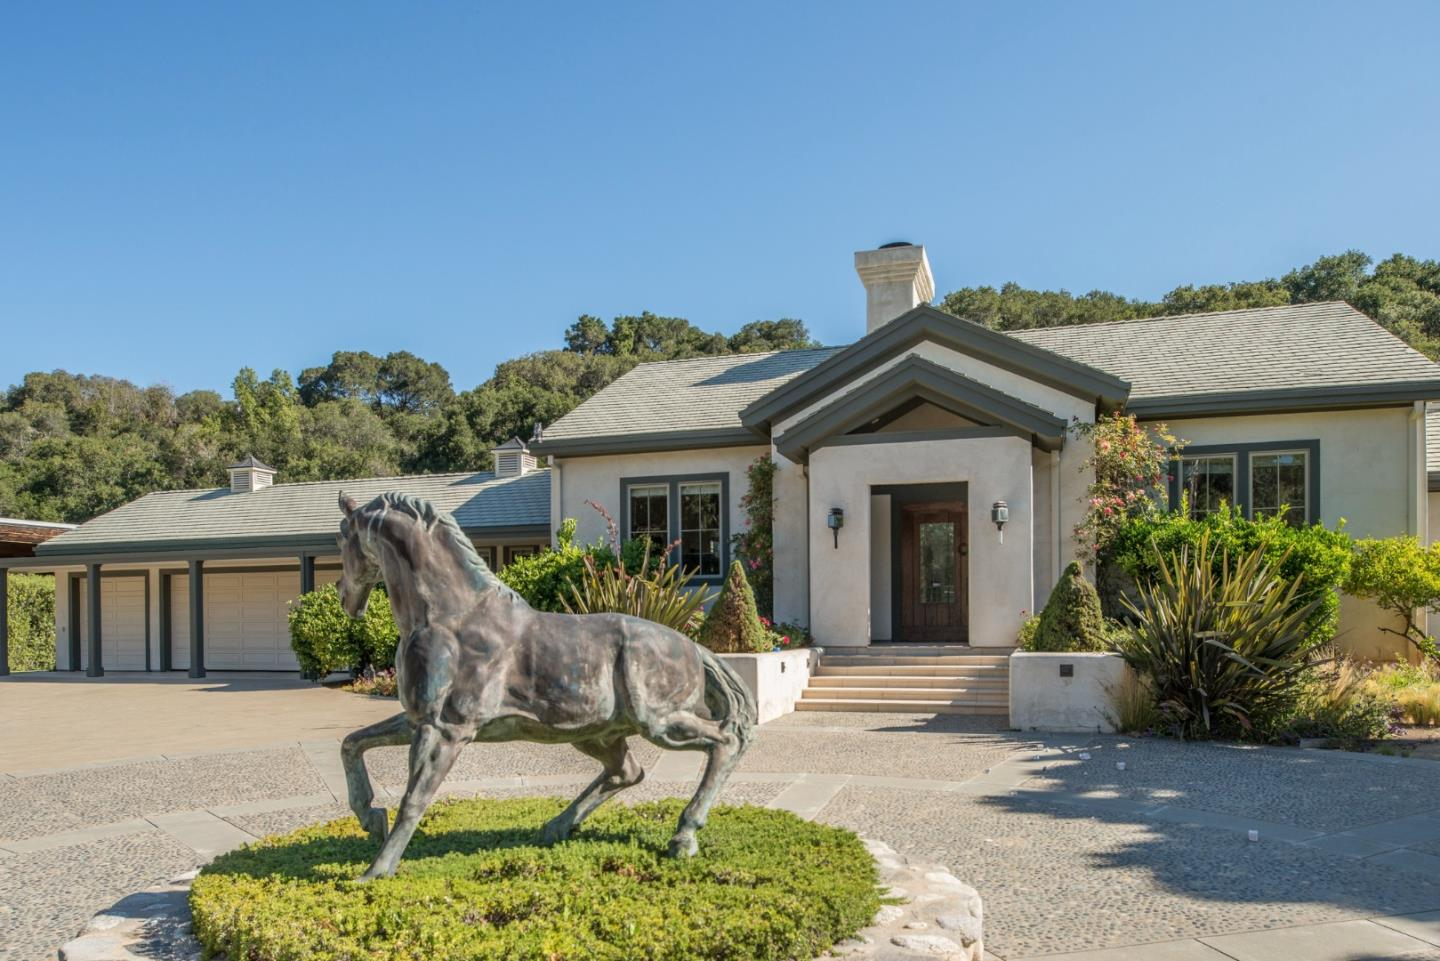 515 W Carmel Valley Rd, Carmel Valley, CA